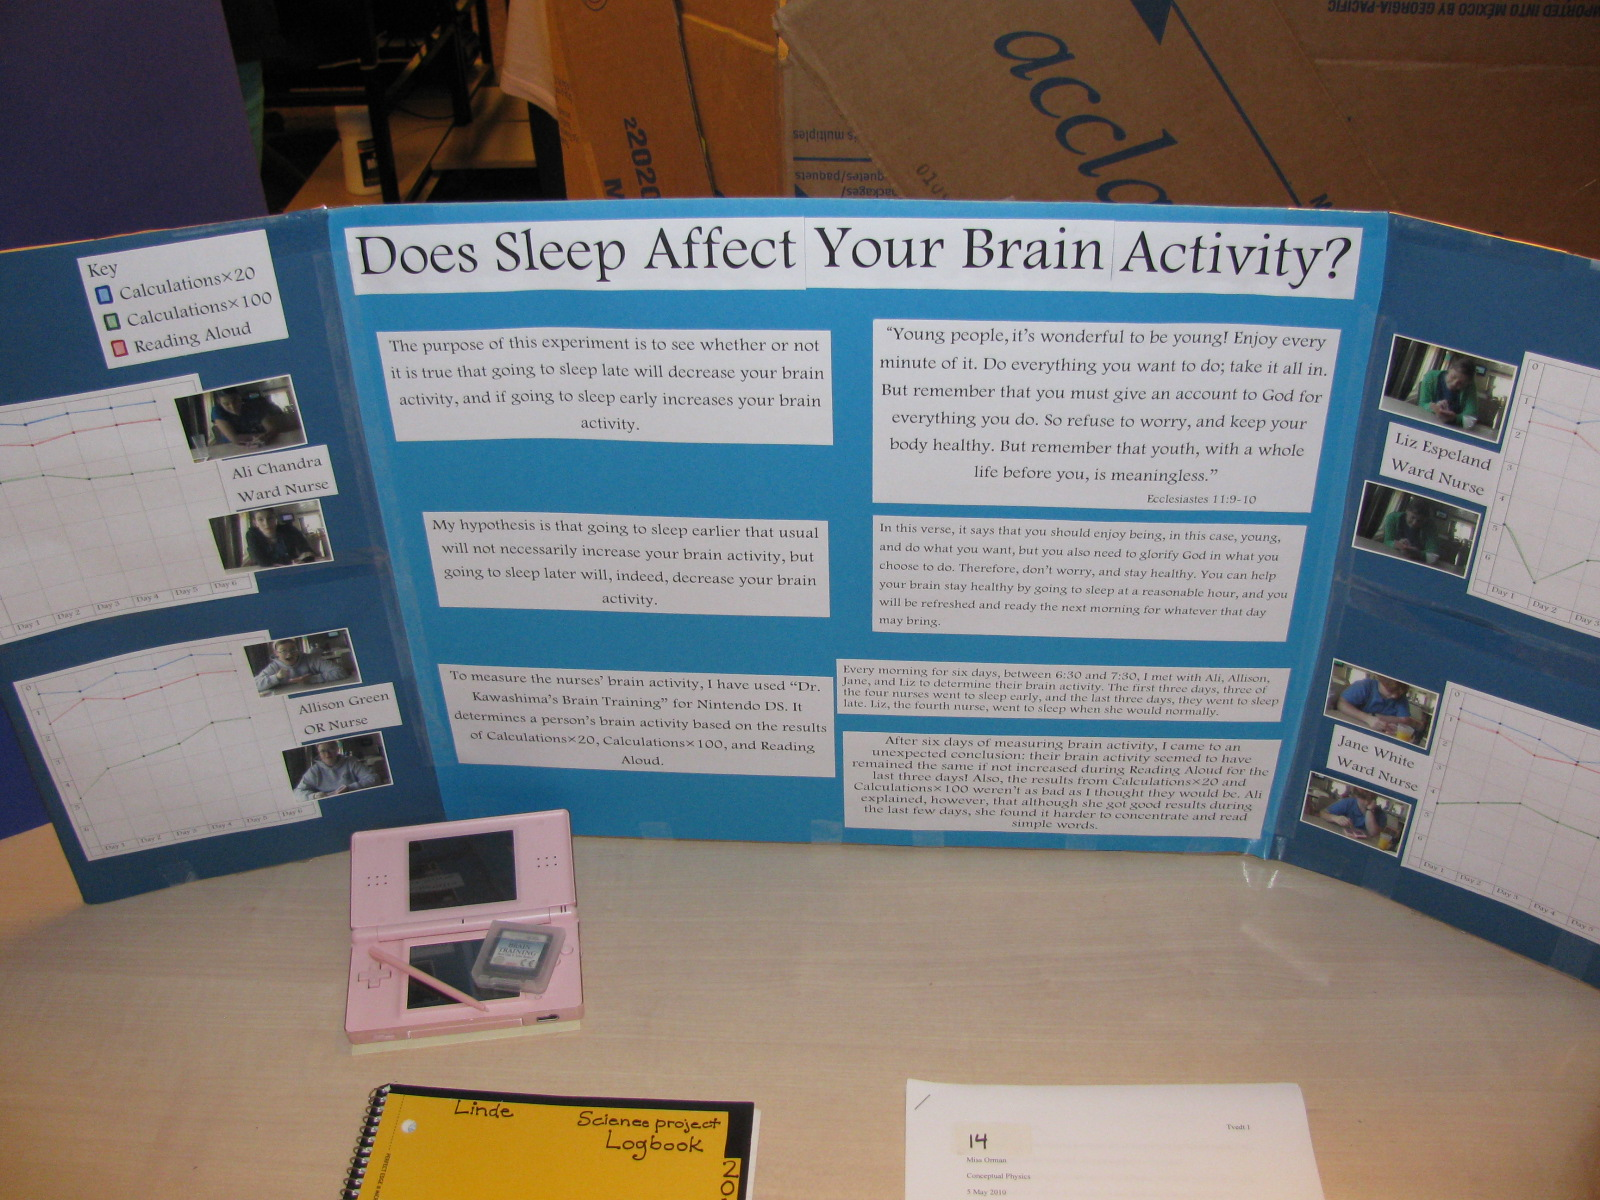 machine industries academy science fair a couple of my friends took part in this experiment by staying up late in order to see if a lack of sleep makes one less alert during the day